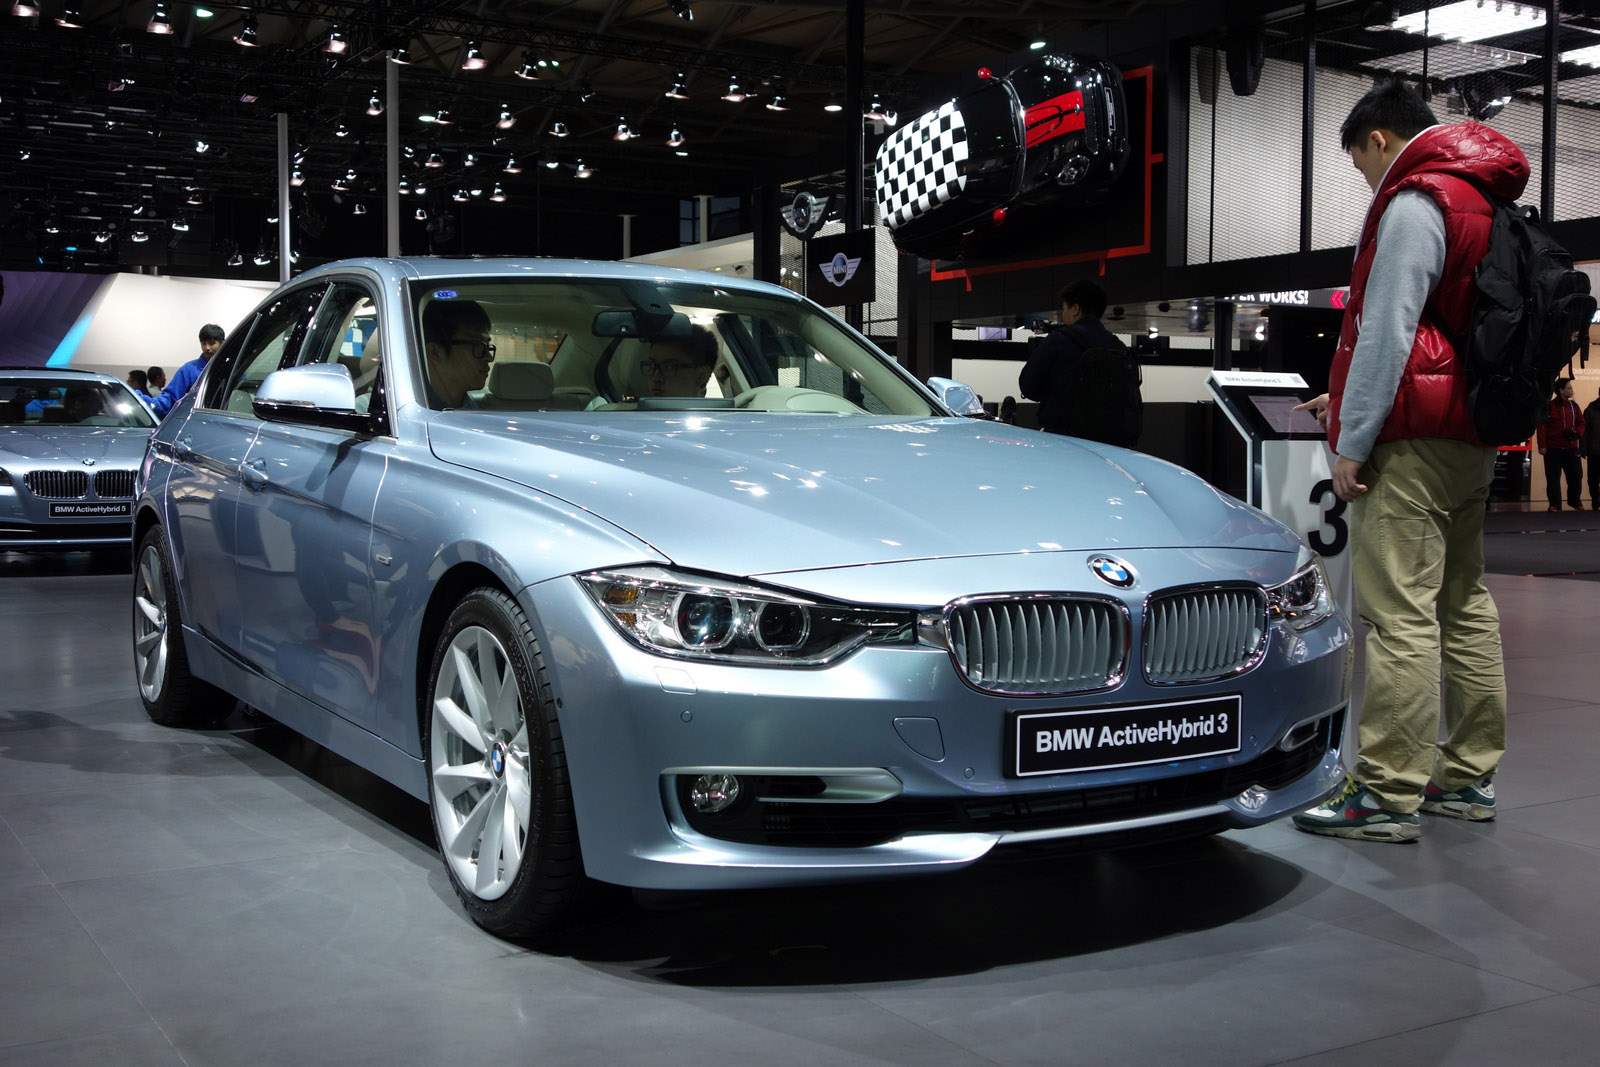 BMW Active Hybrid 5 Series Shanghai 2013 - Picture 84369